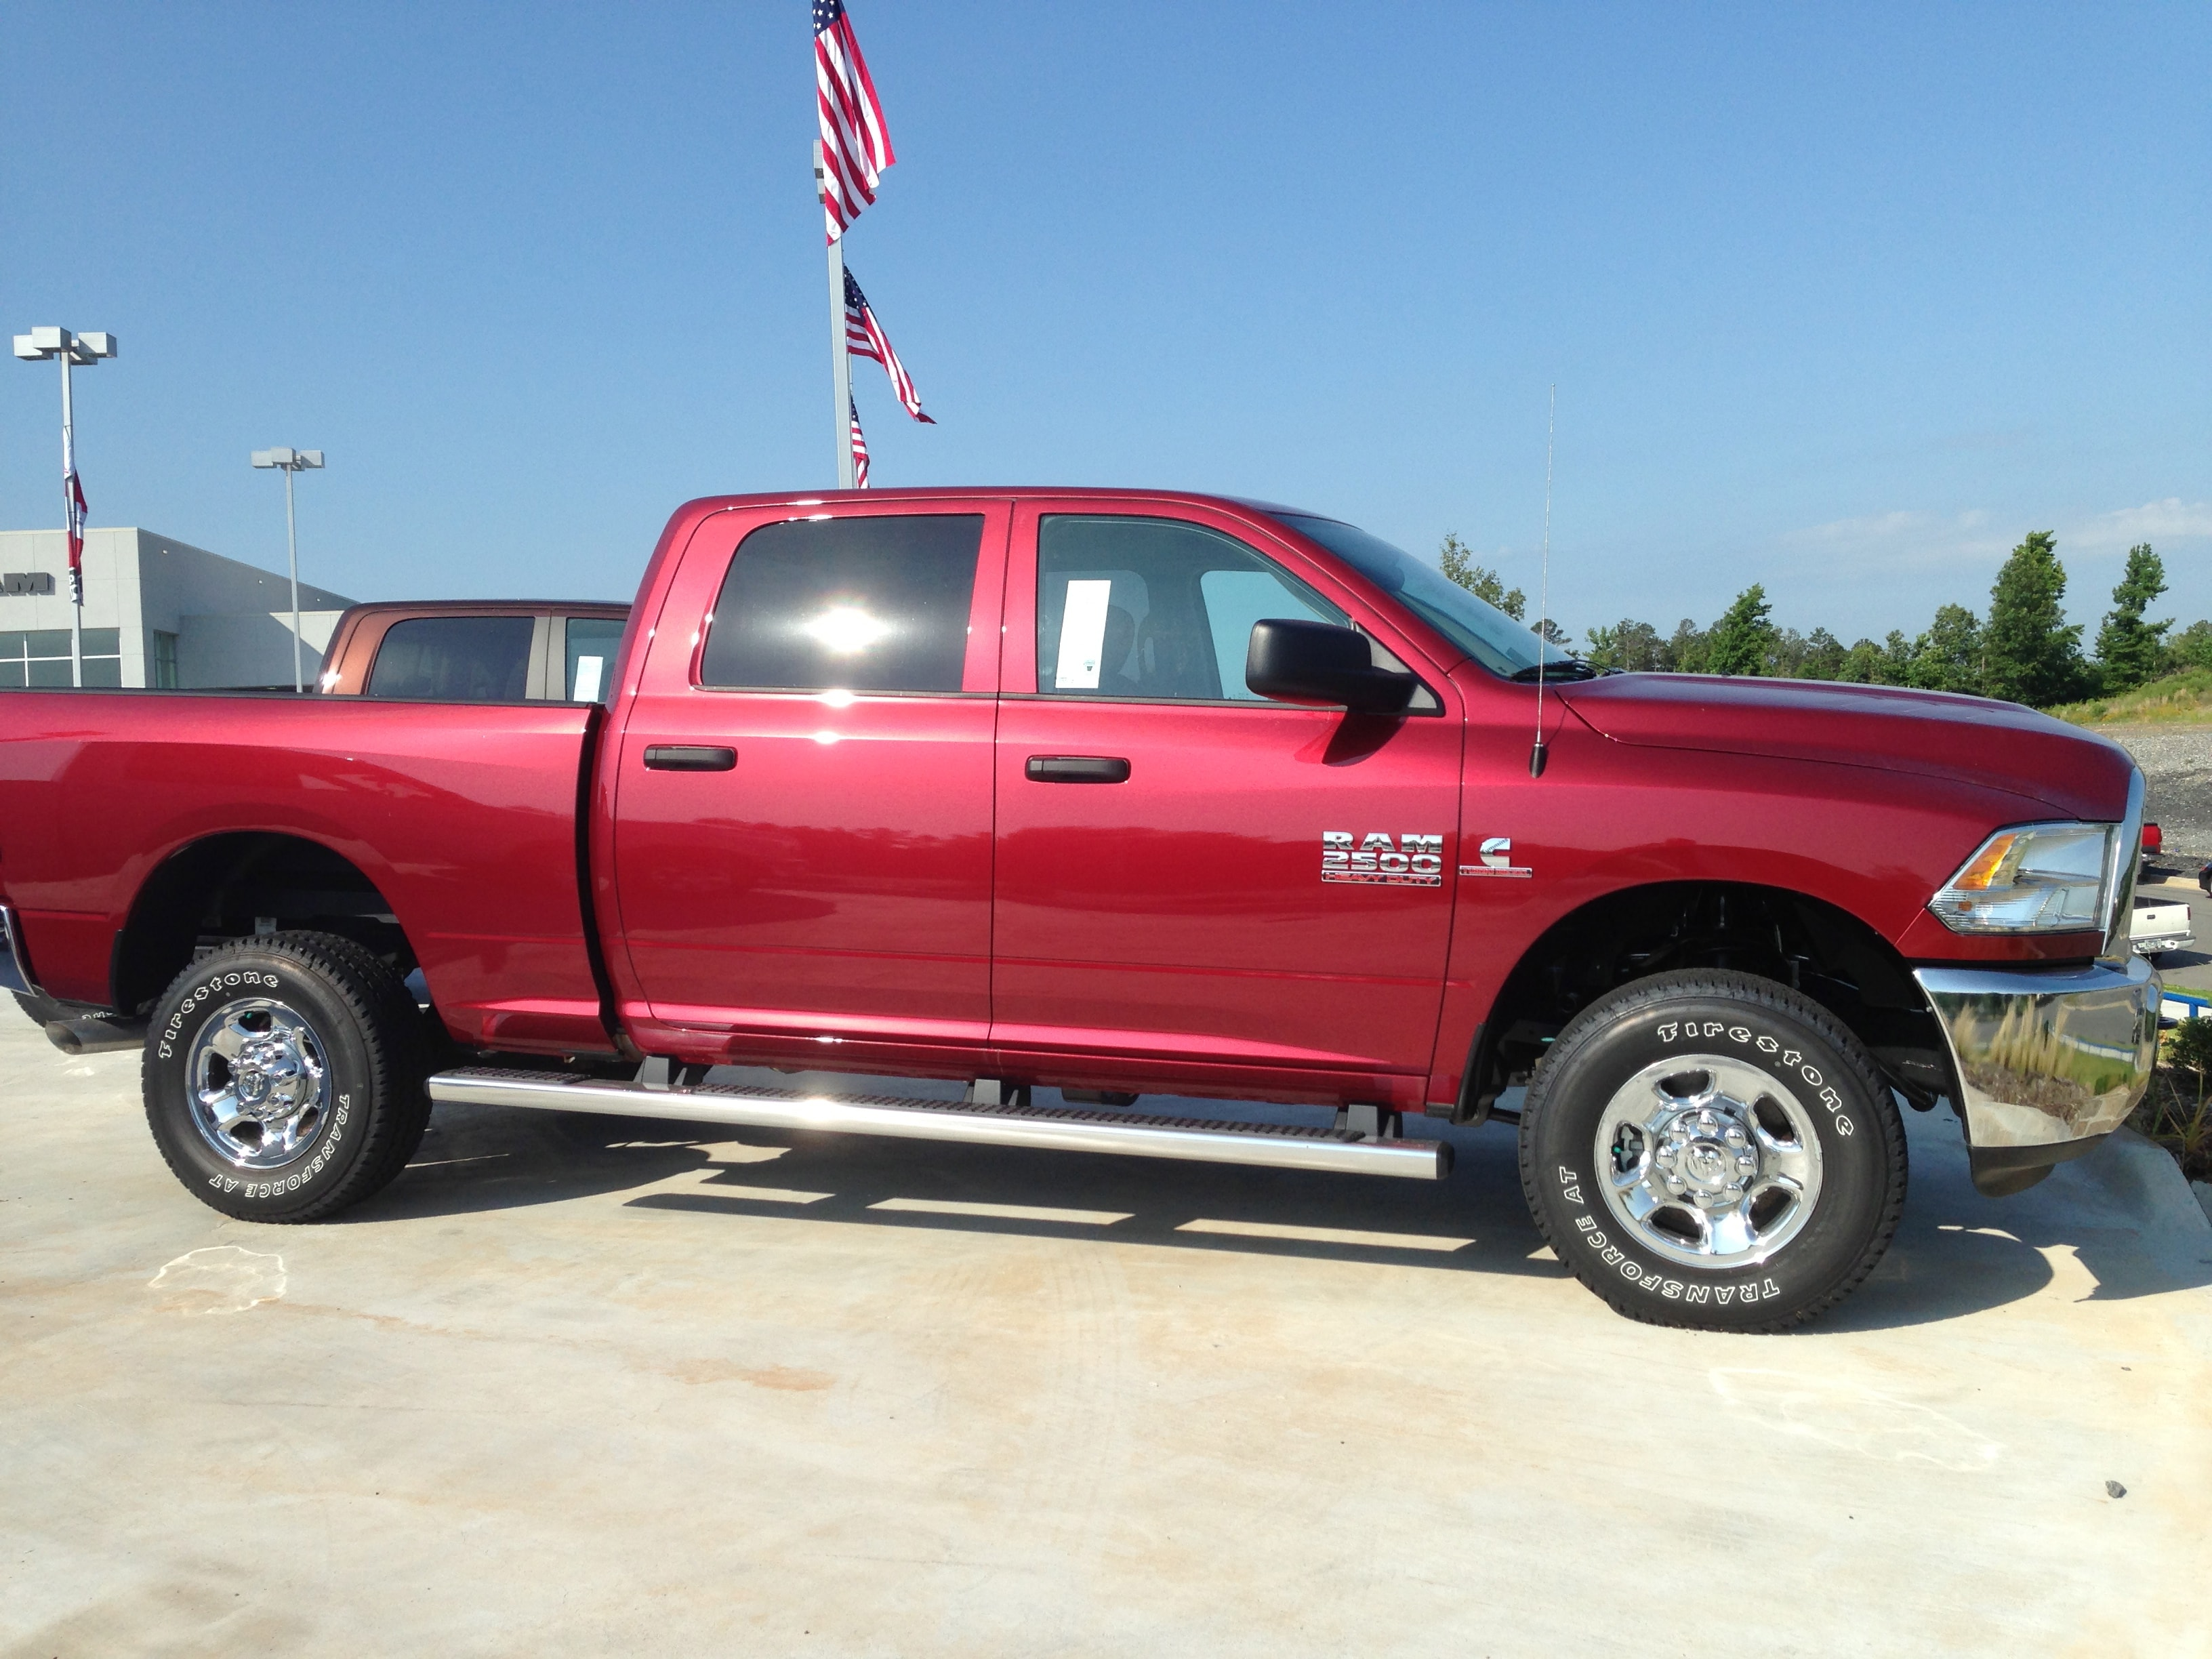 an american icon 2014 ram 2500 steve lander chrysler dodge jeep ram little rock ar - Dodge Ram 2500 2014 Red